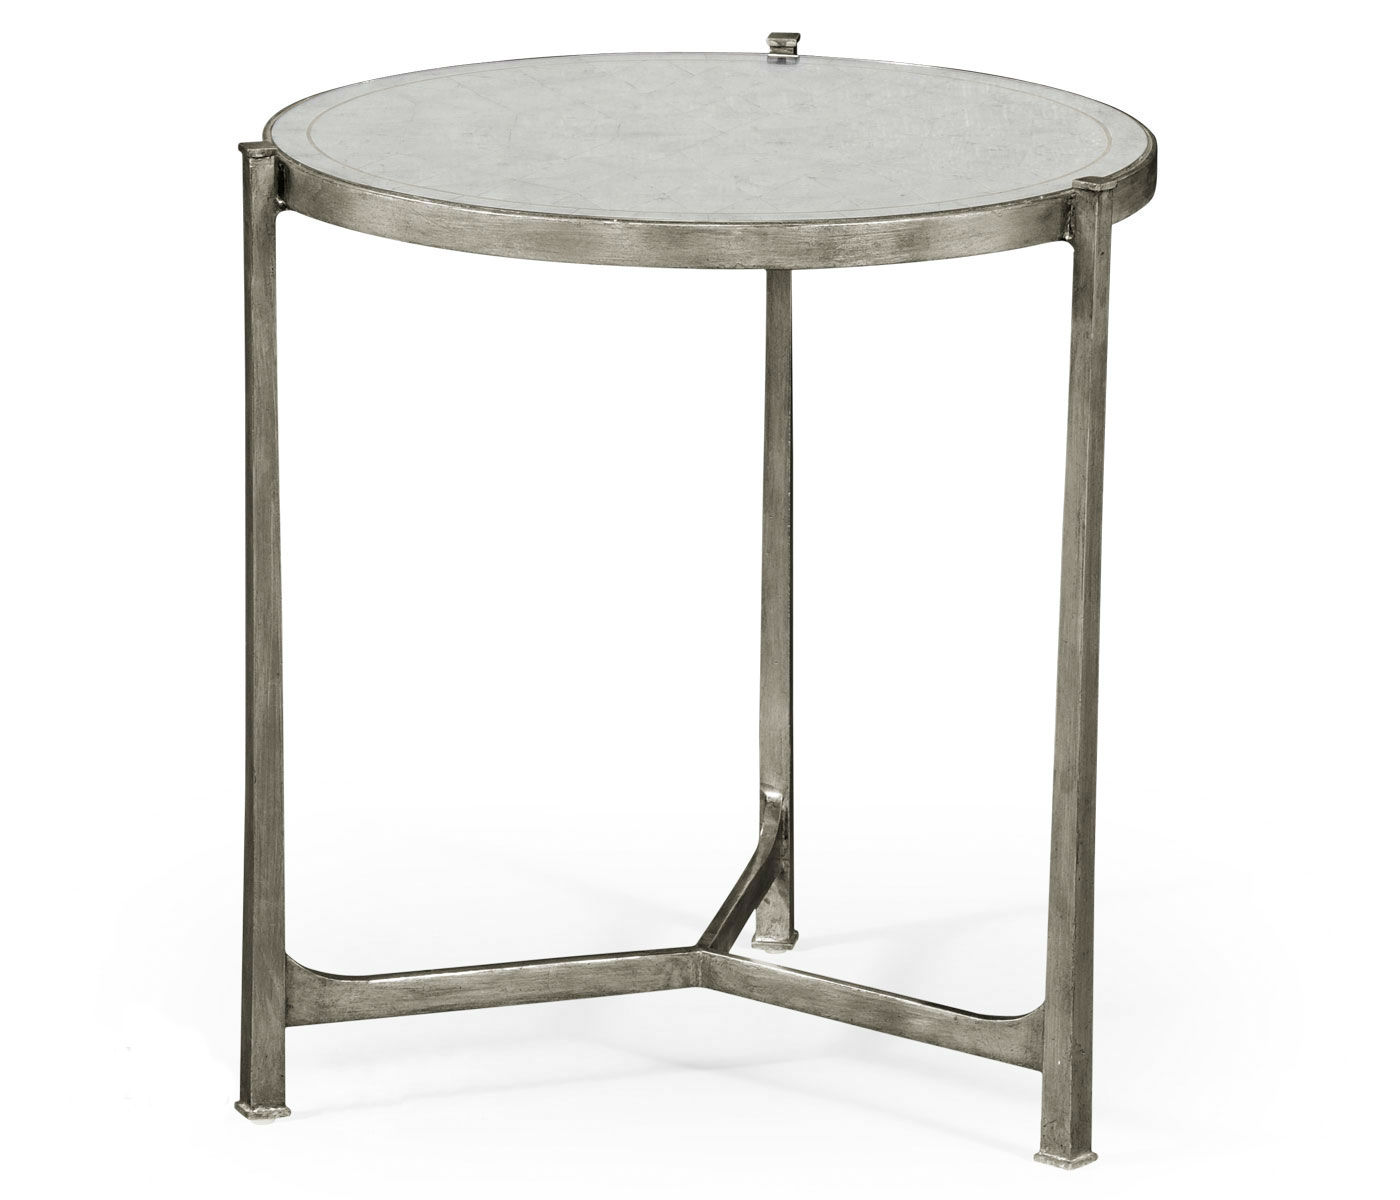 silver side table tables end small mirrored accent elegant tall antiqued partner console coffee available hospitality residential ikea slim bedside kitchen dining room furniture